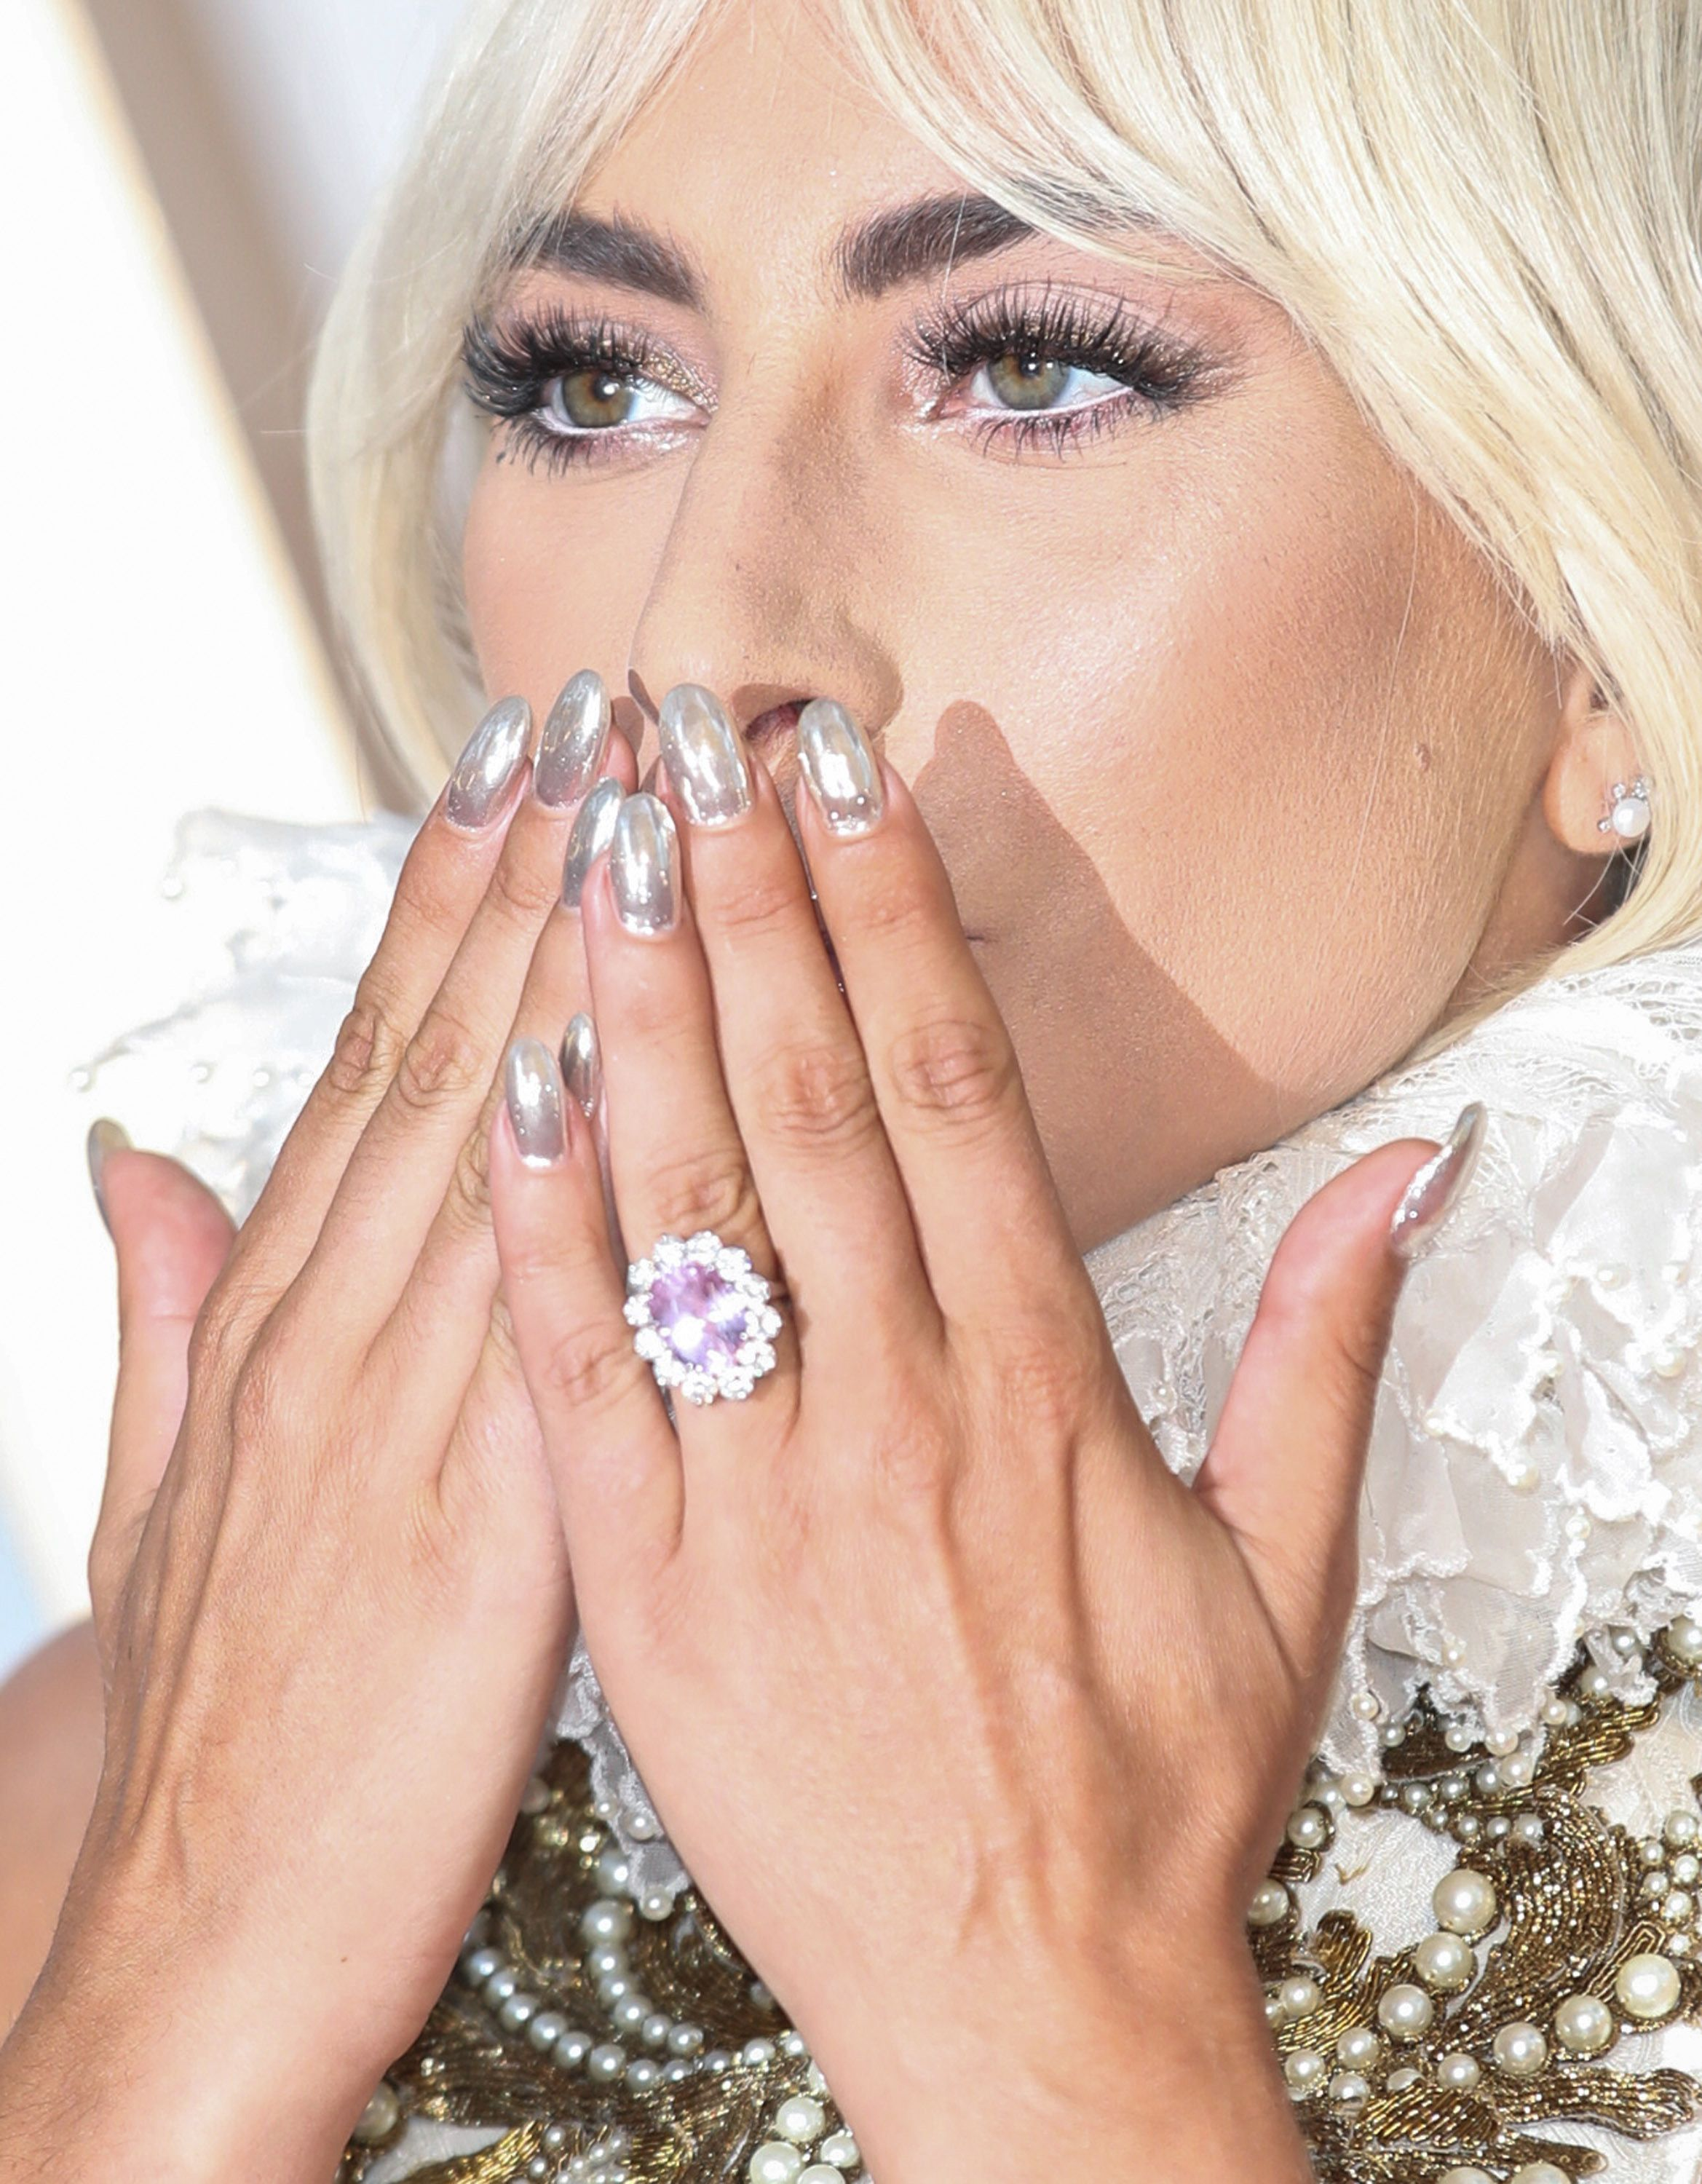 Lady Gaga S Pink Engagement Ring From Christian Carino Is Just Like